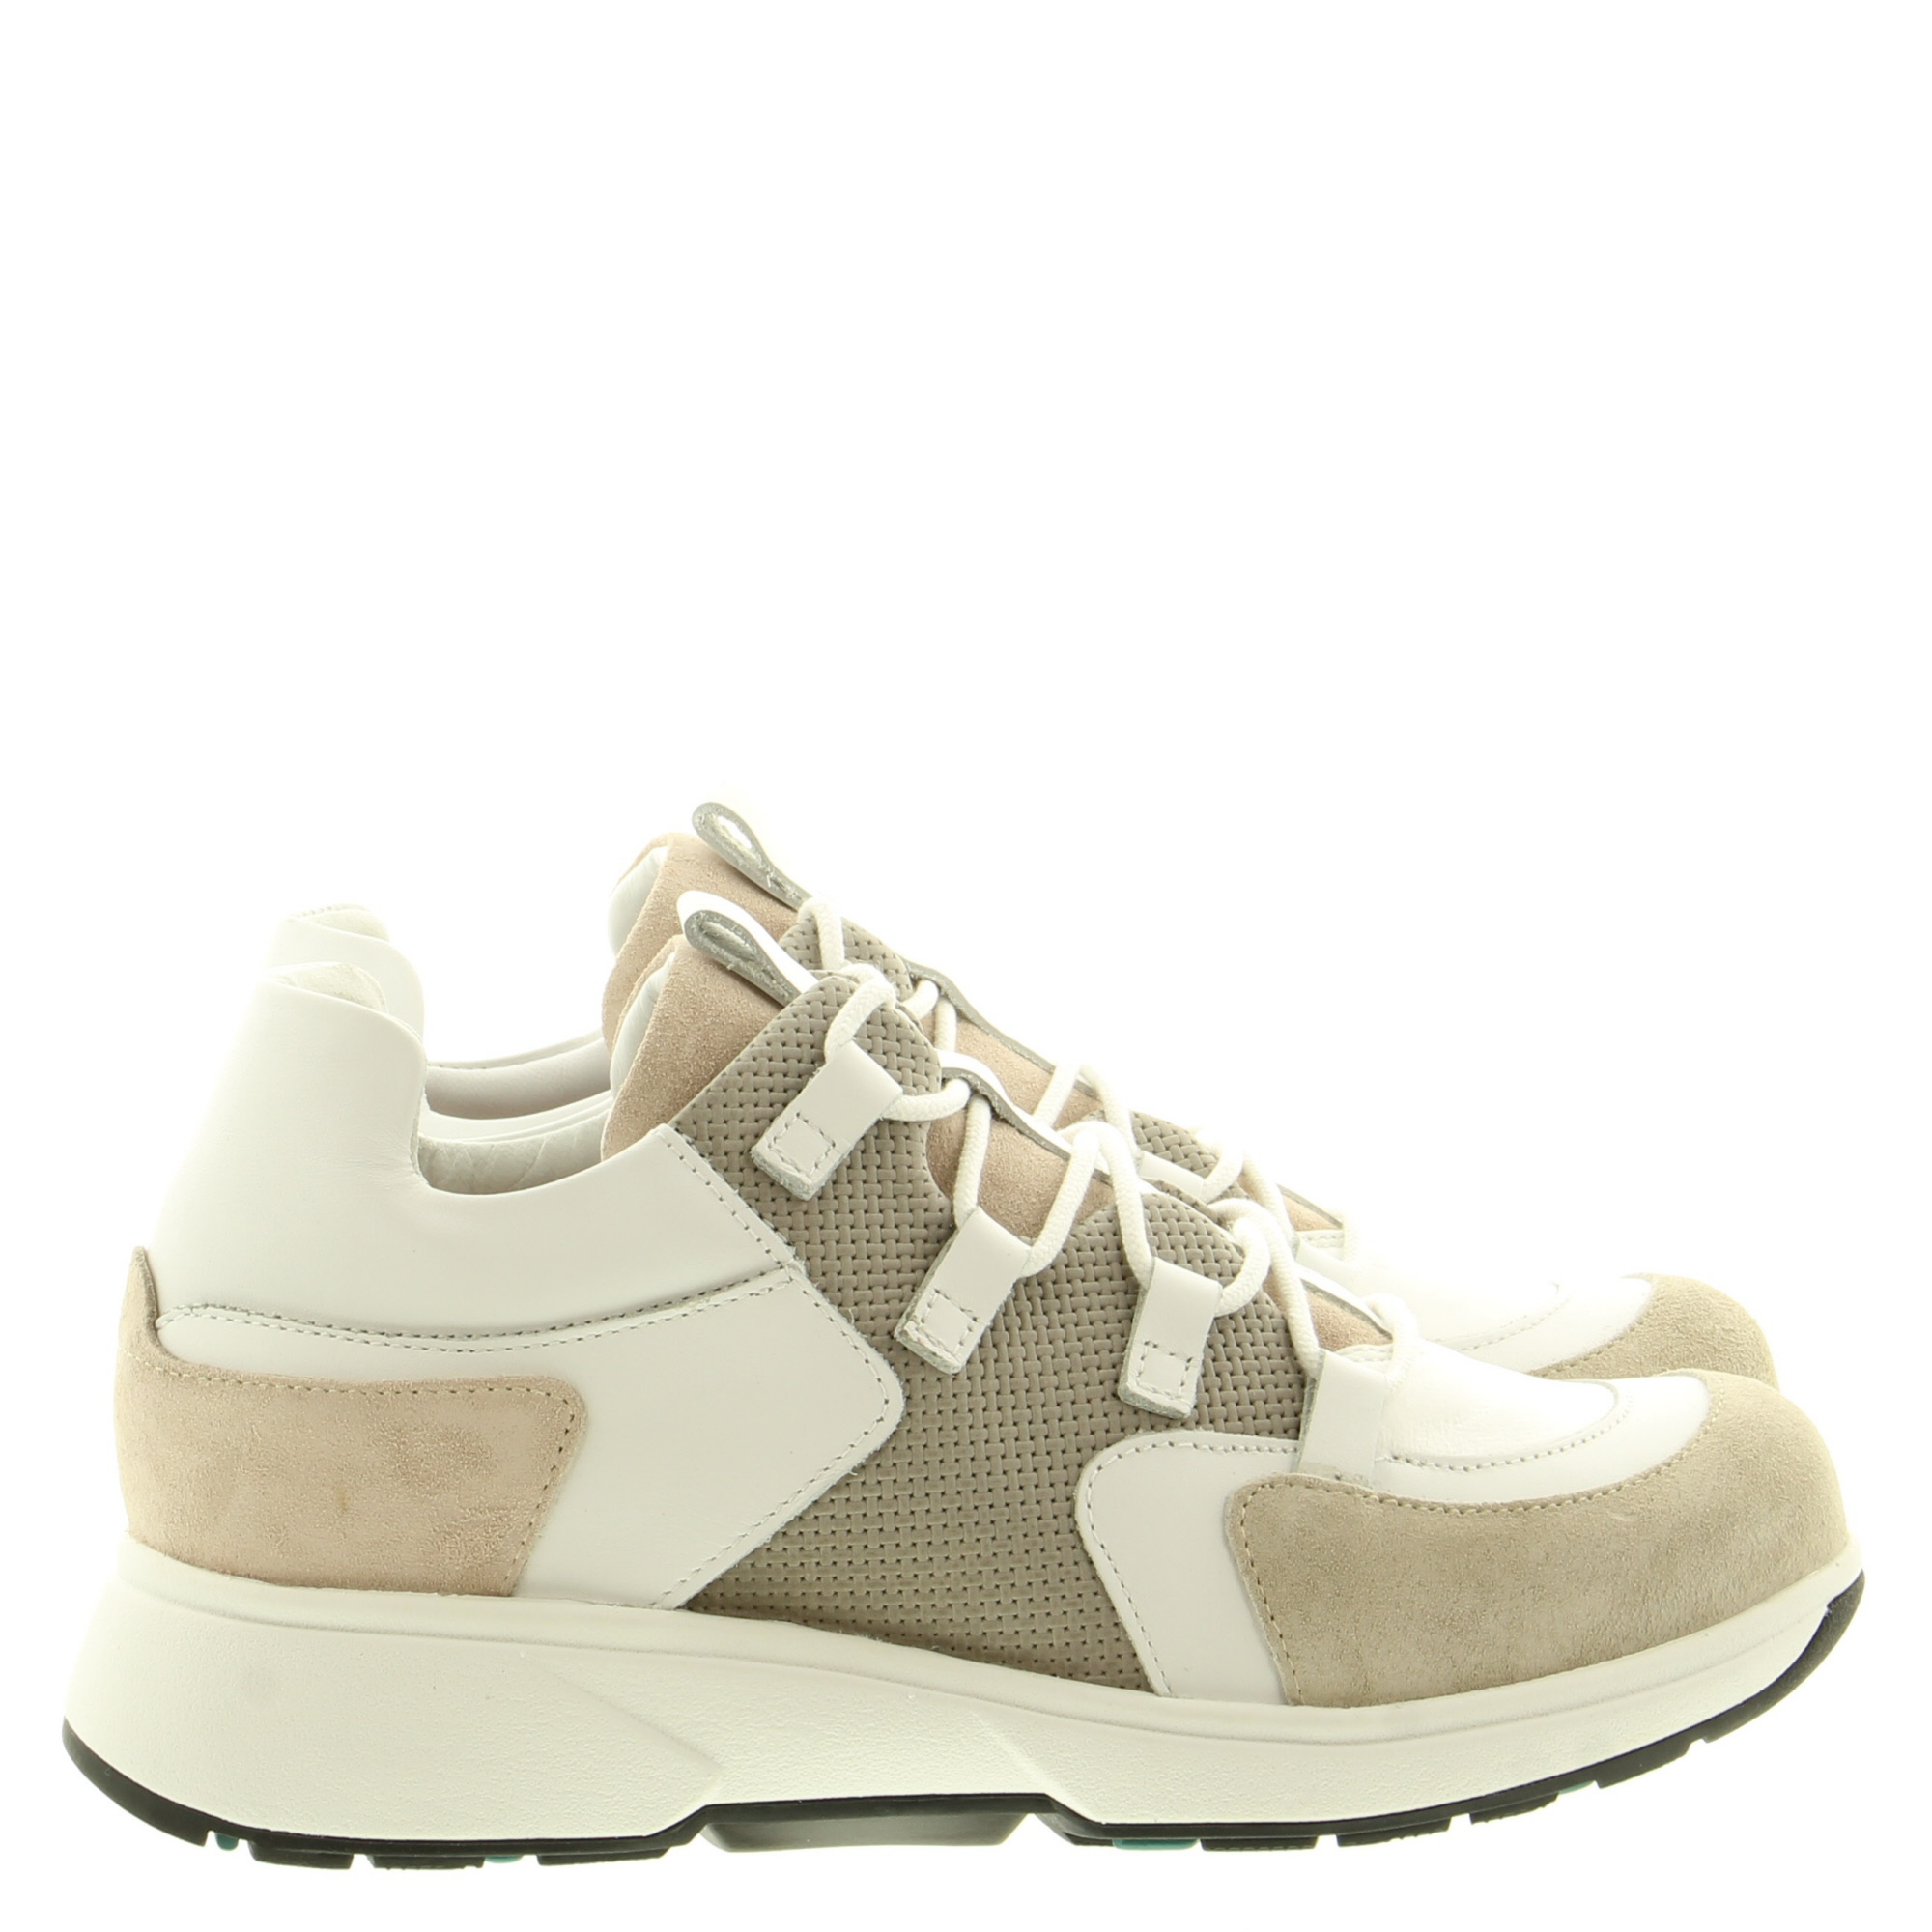 Xsensible 30207.3.501 Lille Taupe